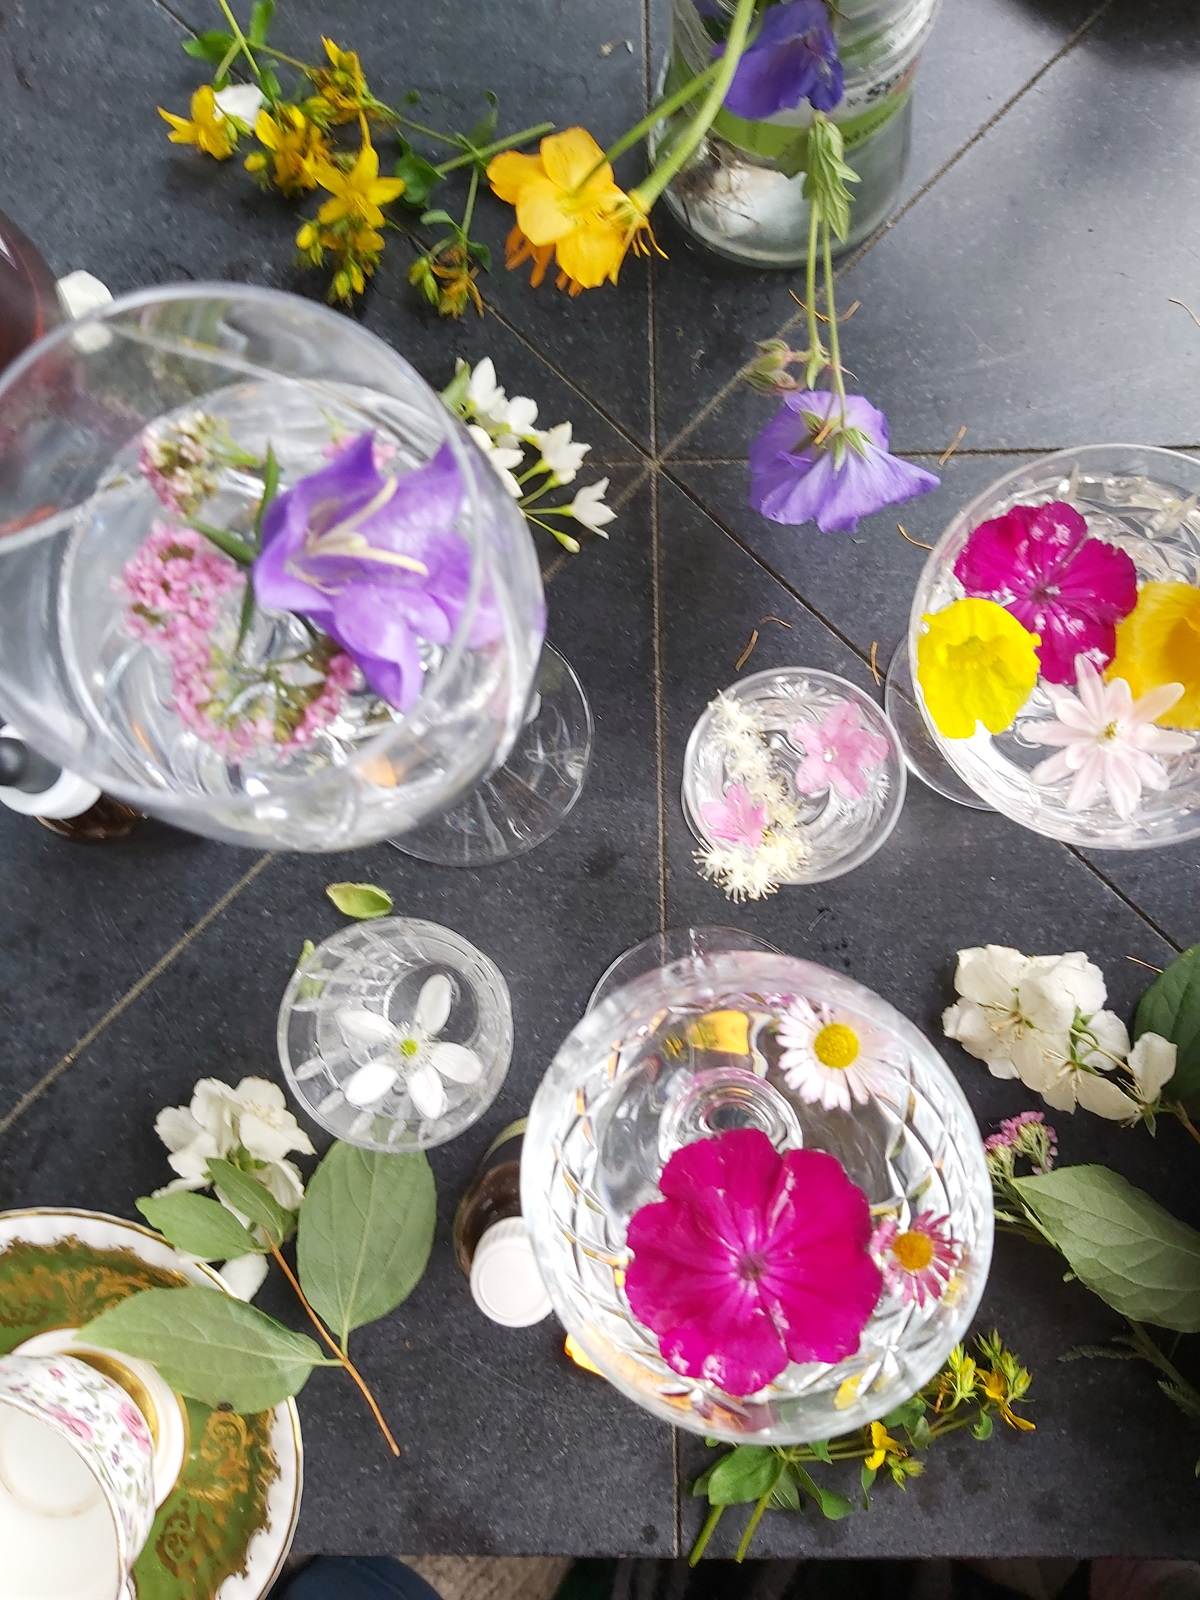 Many glasses of liquid hold vibrant flowers of many colors